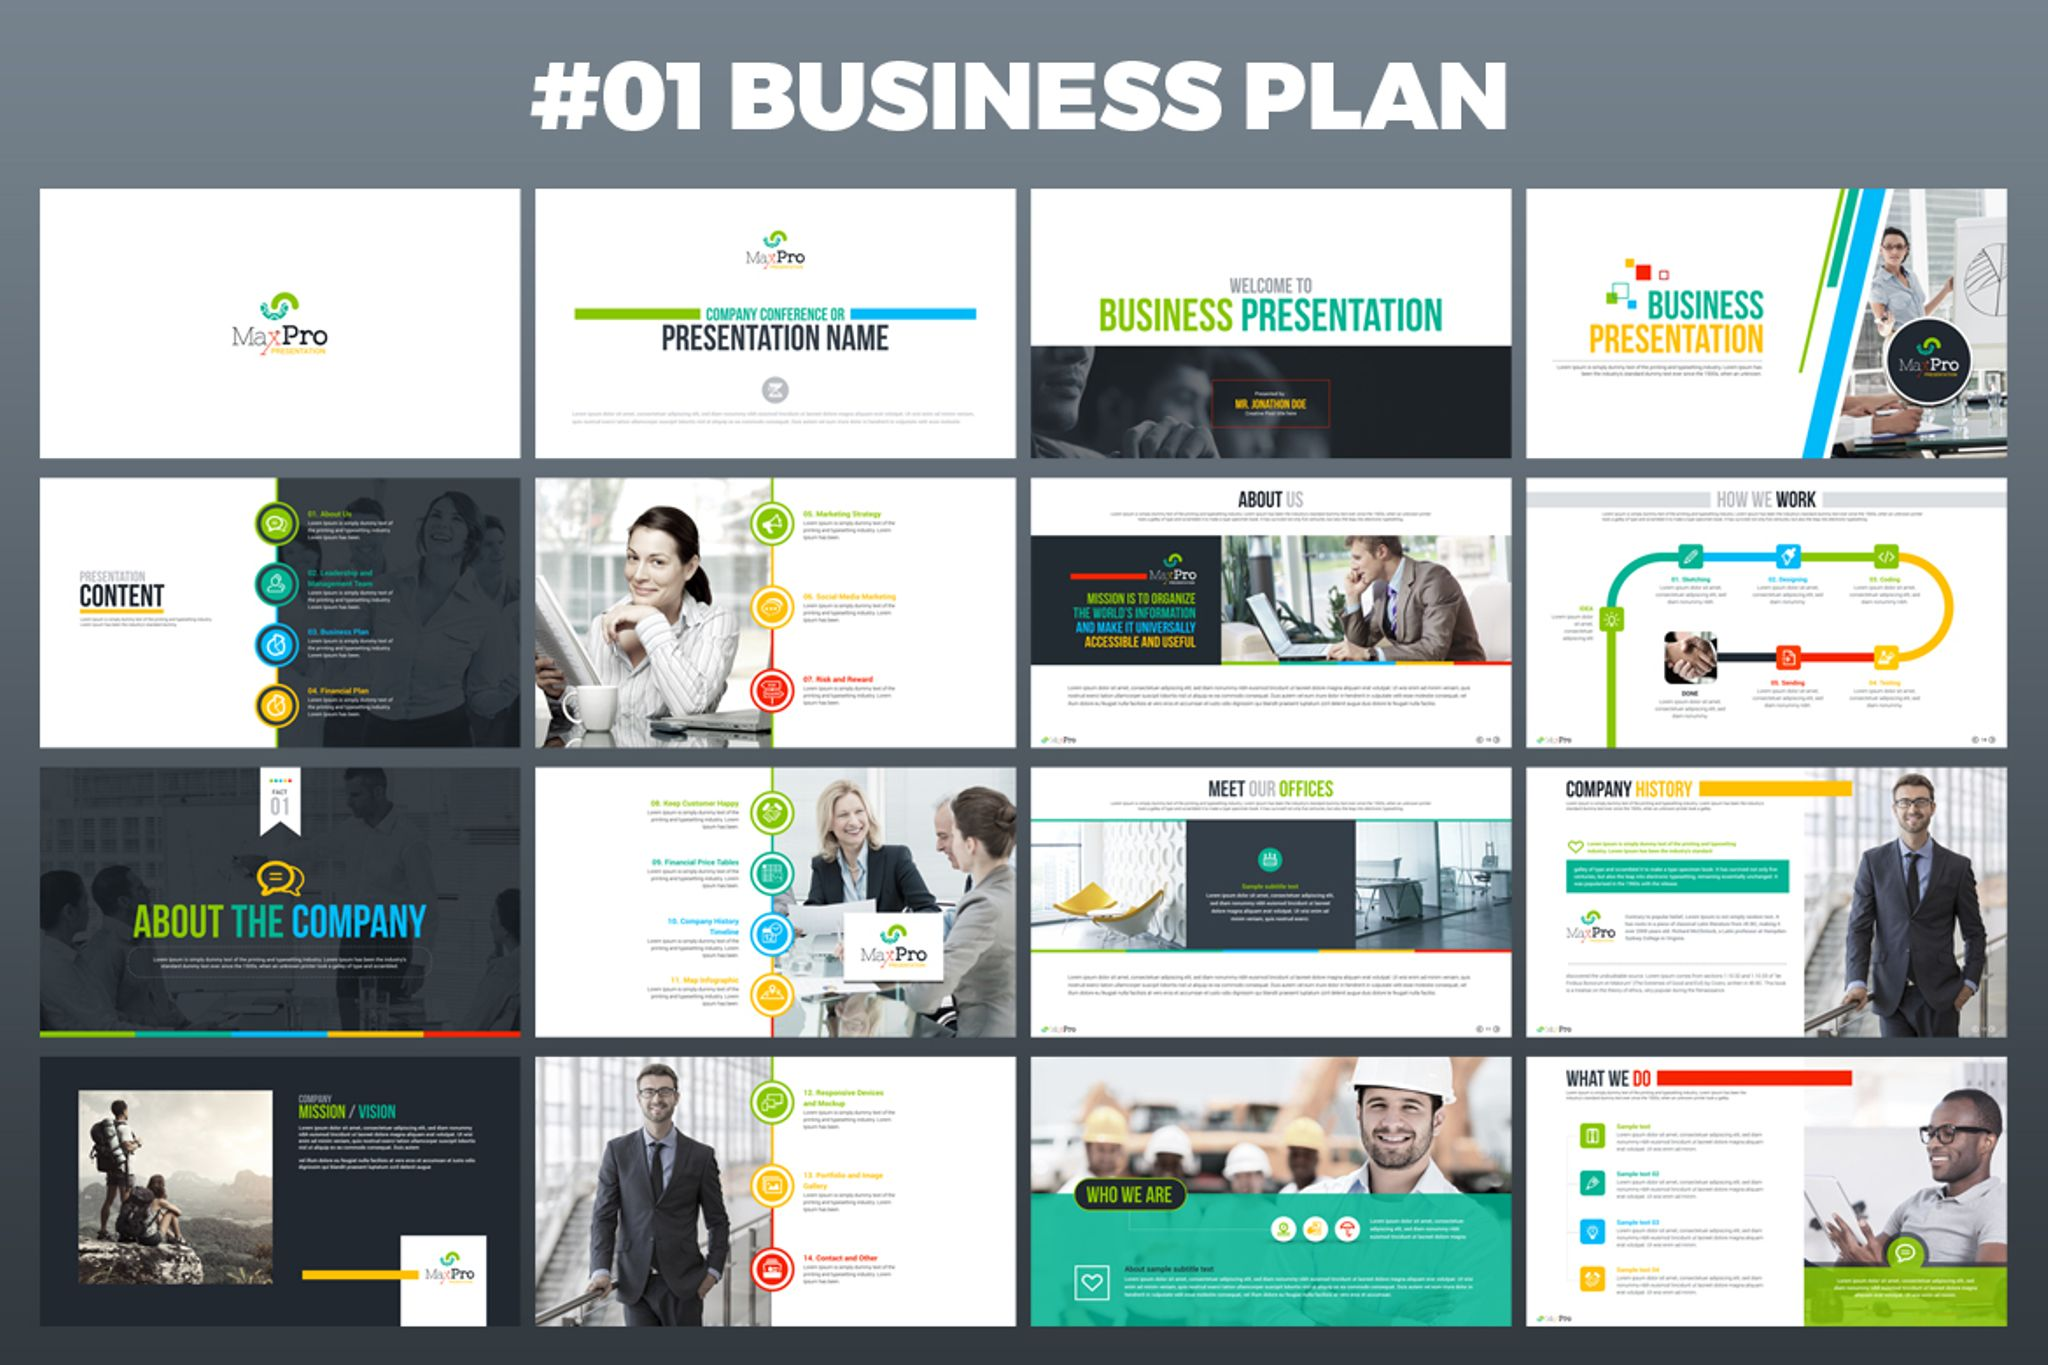 Maxpro business plan powerpoint template 66751 maxpro business plan powerpoint template big screenshot friedricerecipe Gallery